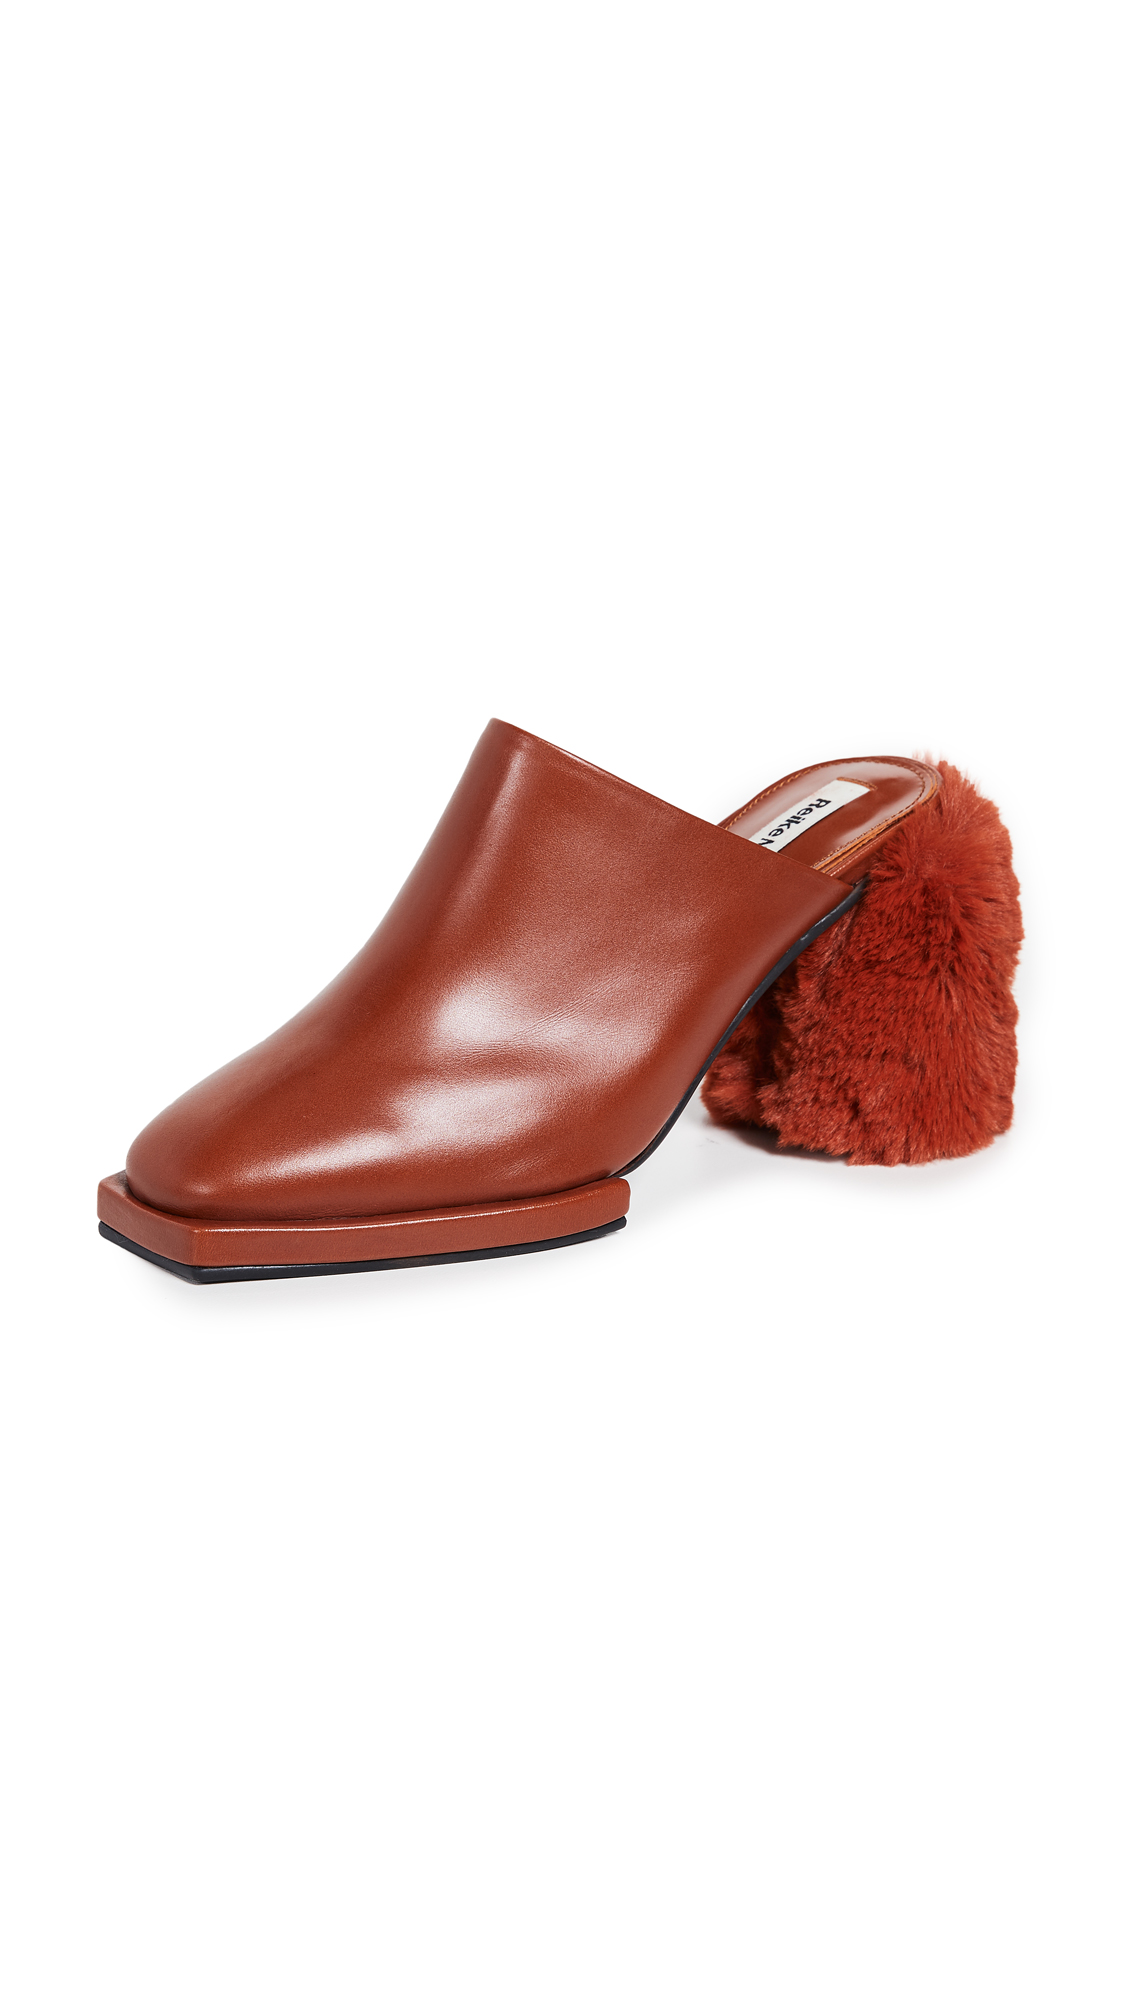 Reike Nen Square Platform Mules - Brown/Copper